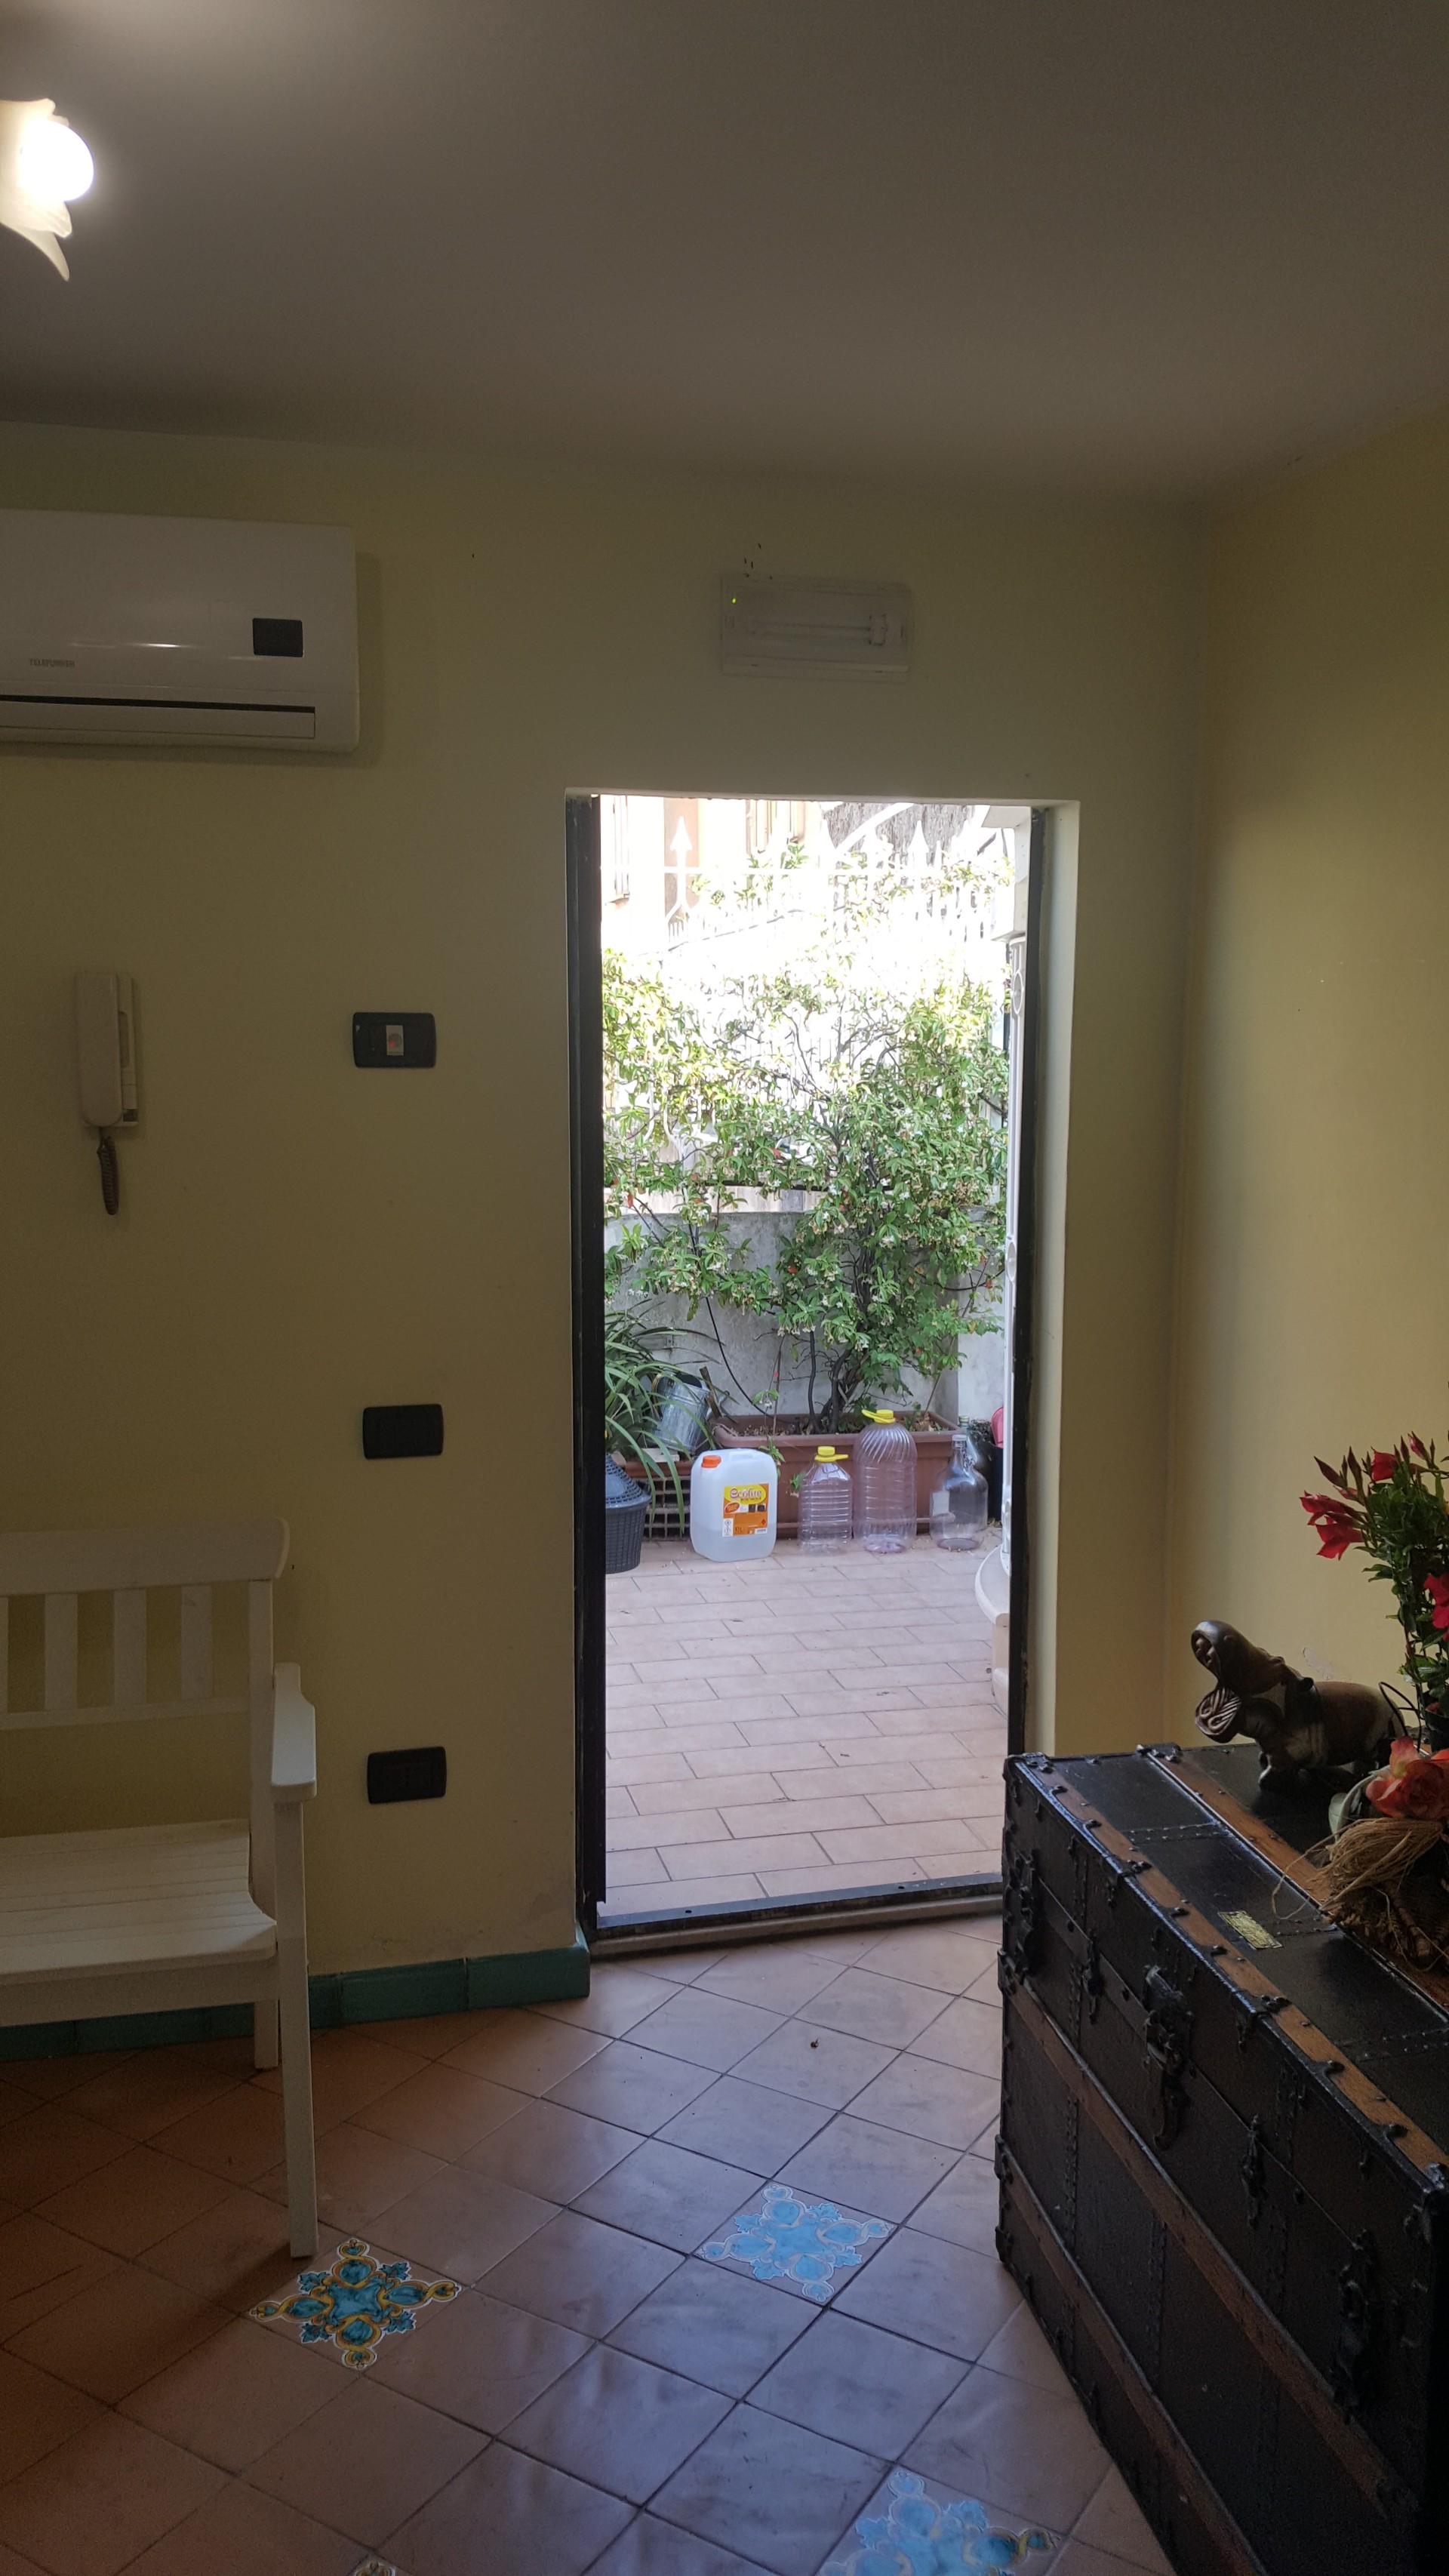 Studio For Rent In Salerno Pets Allowed And With Internet